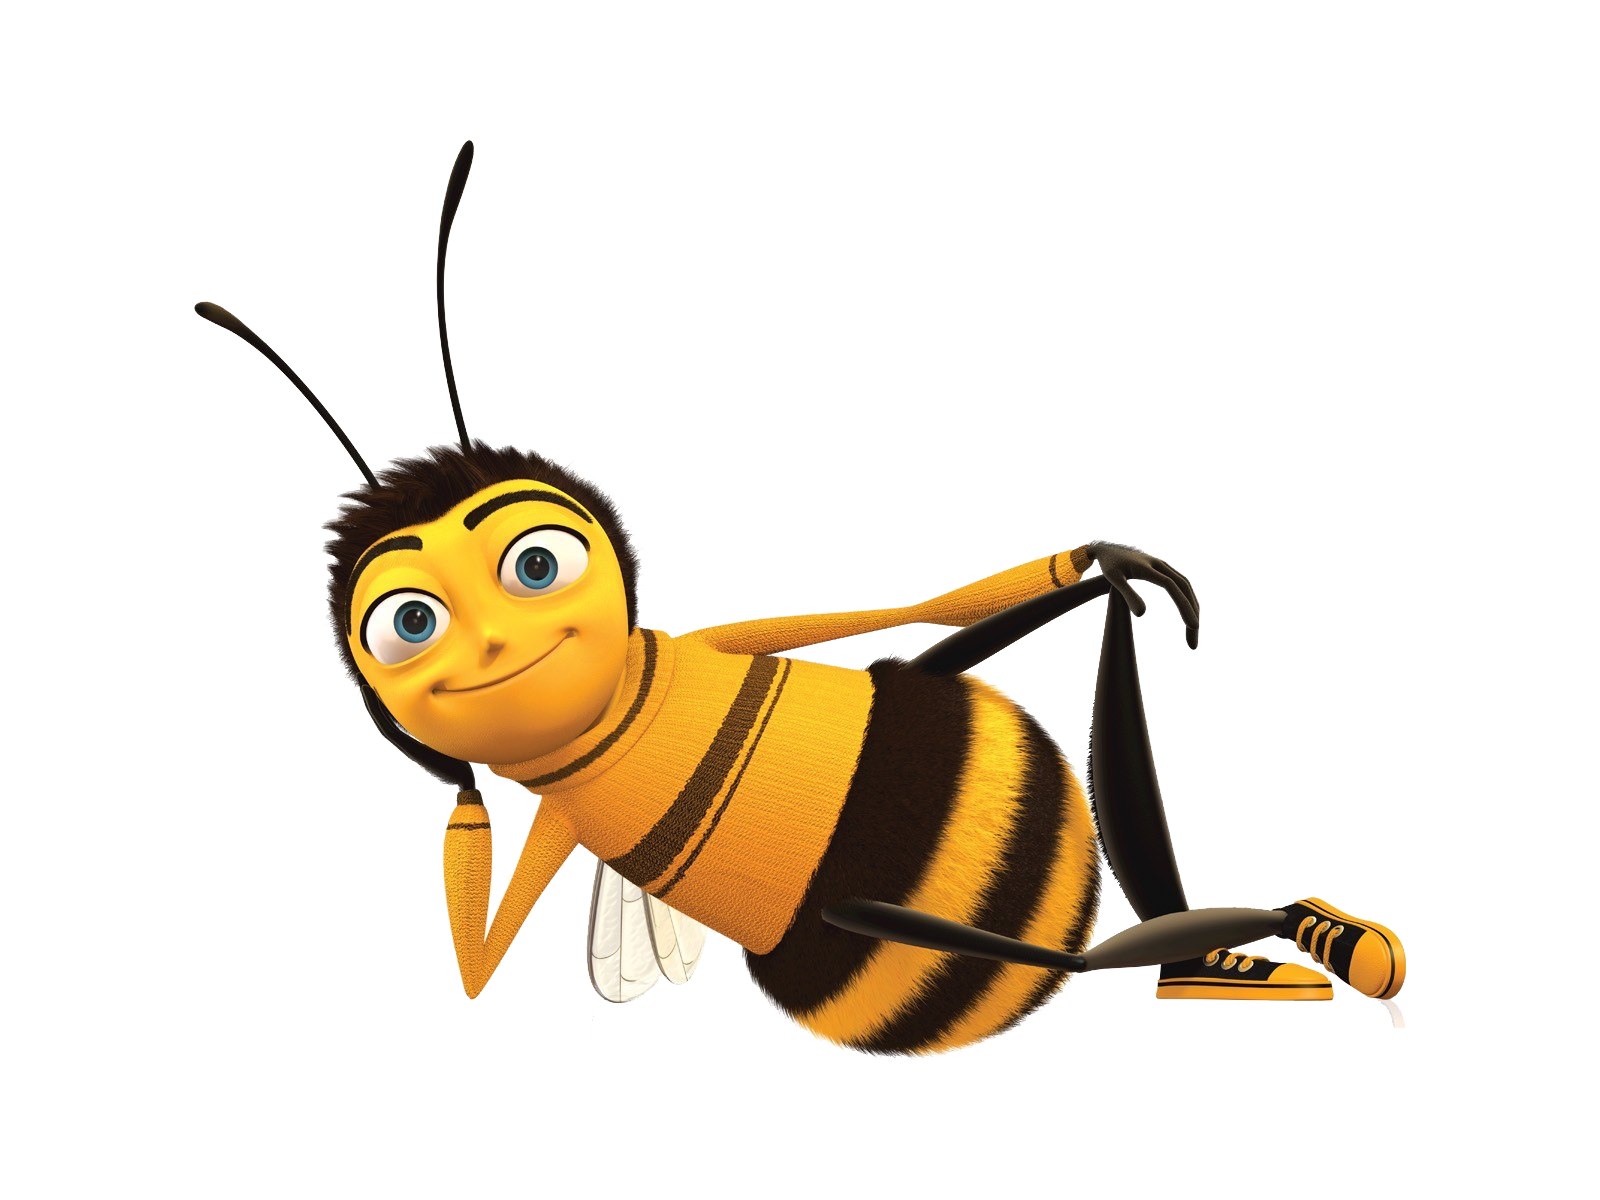 Bee png. Free transparent images pluspng